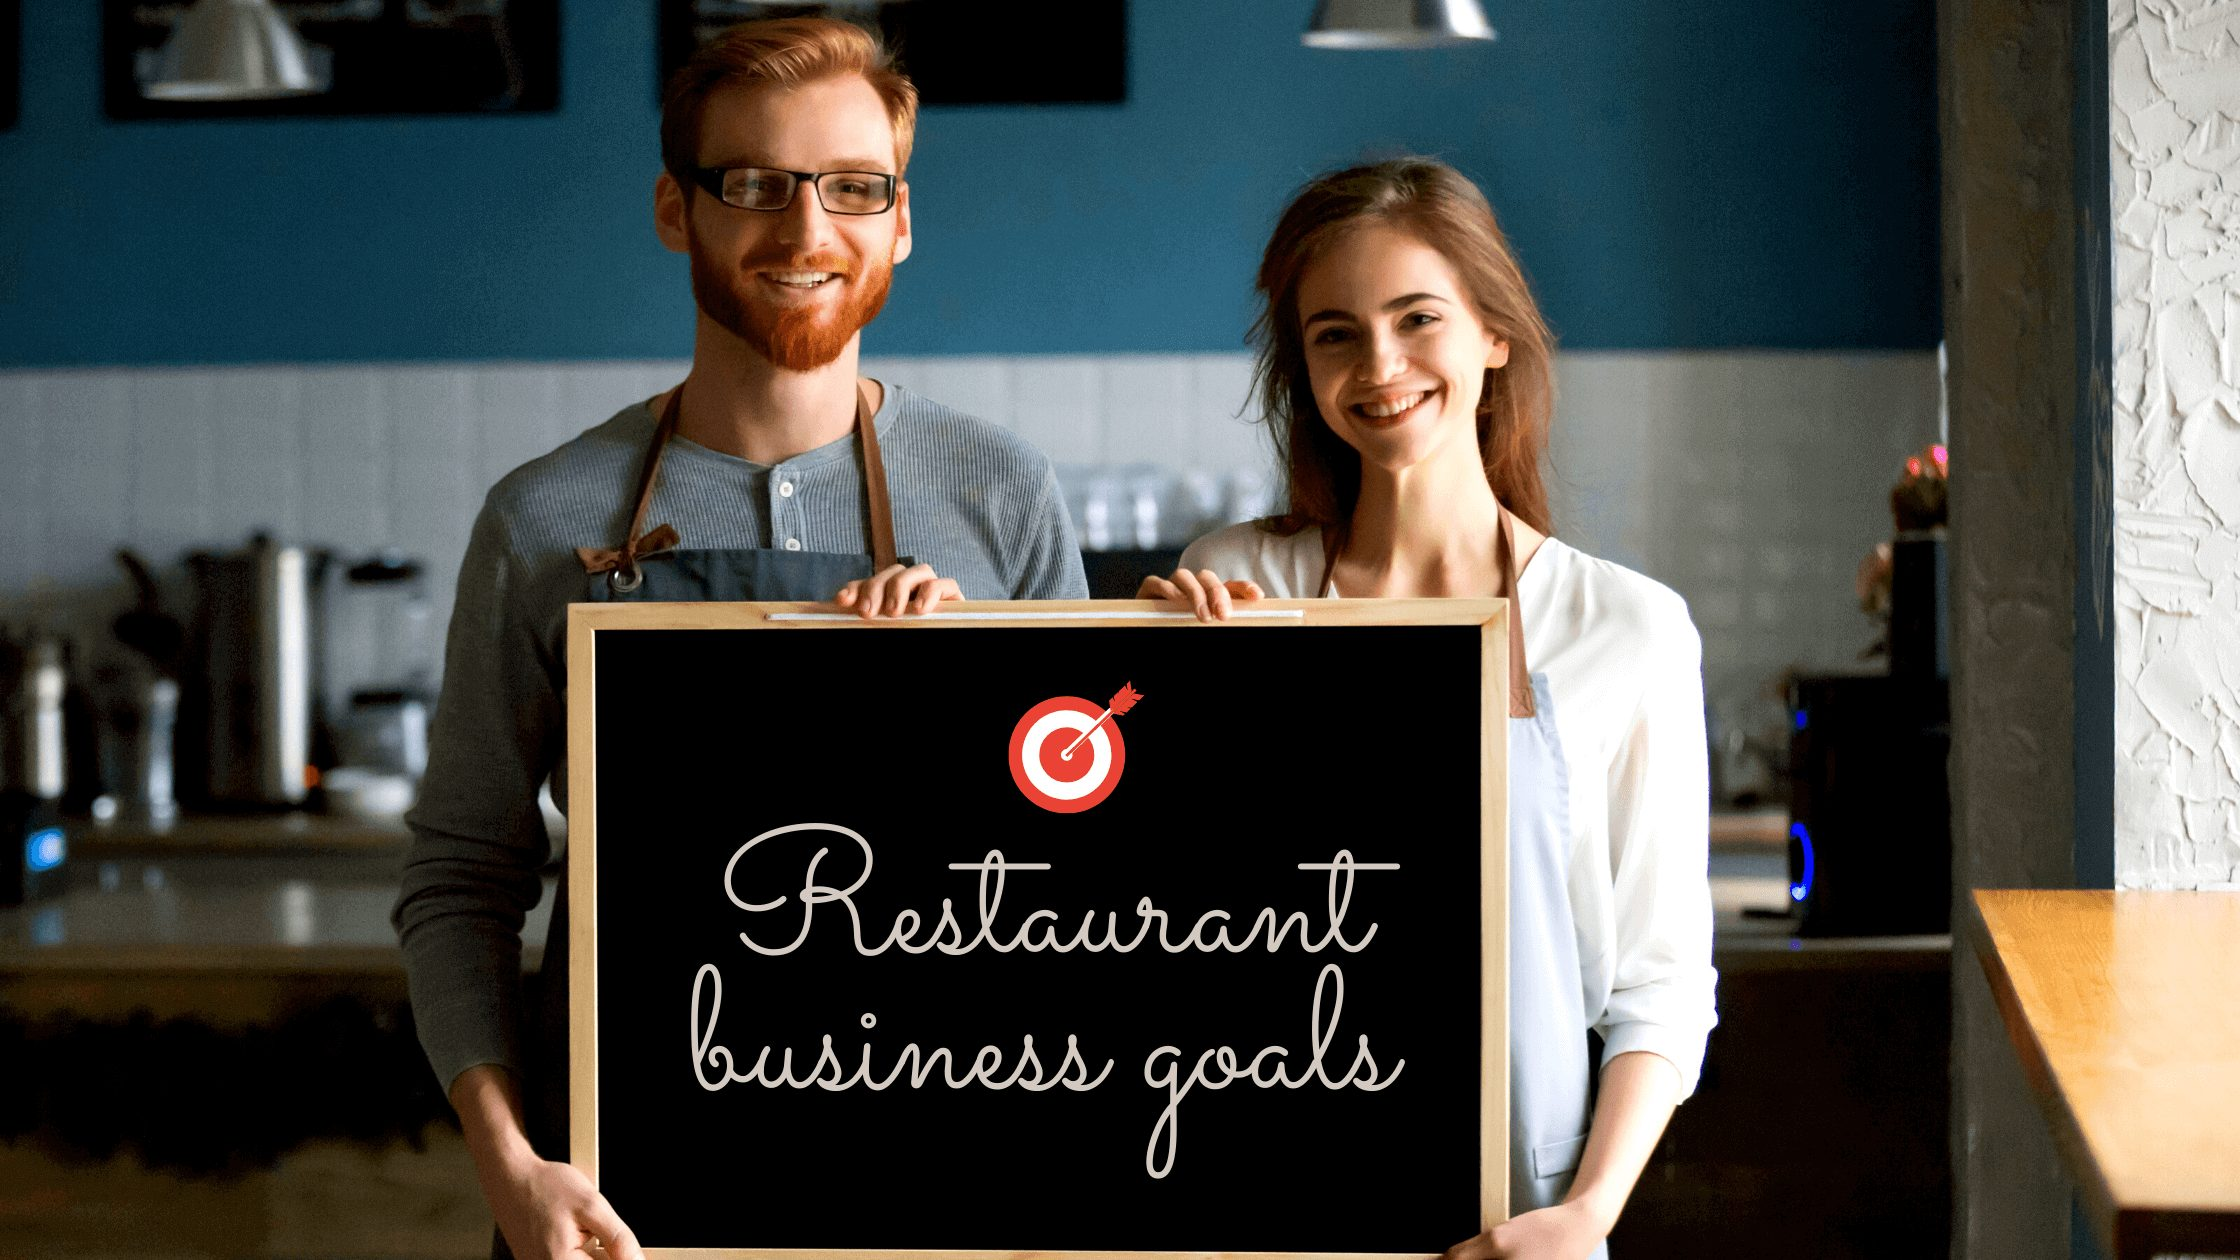 Restaurant business goals & objectives